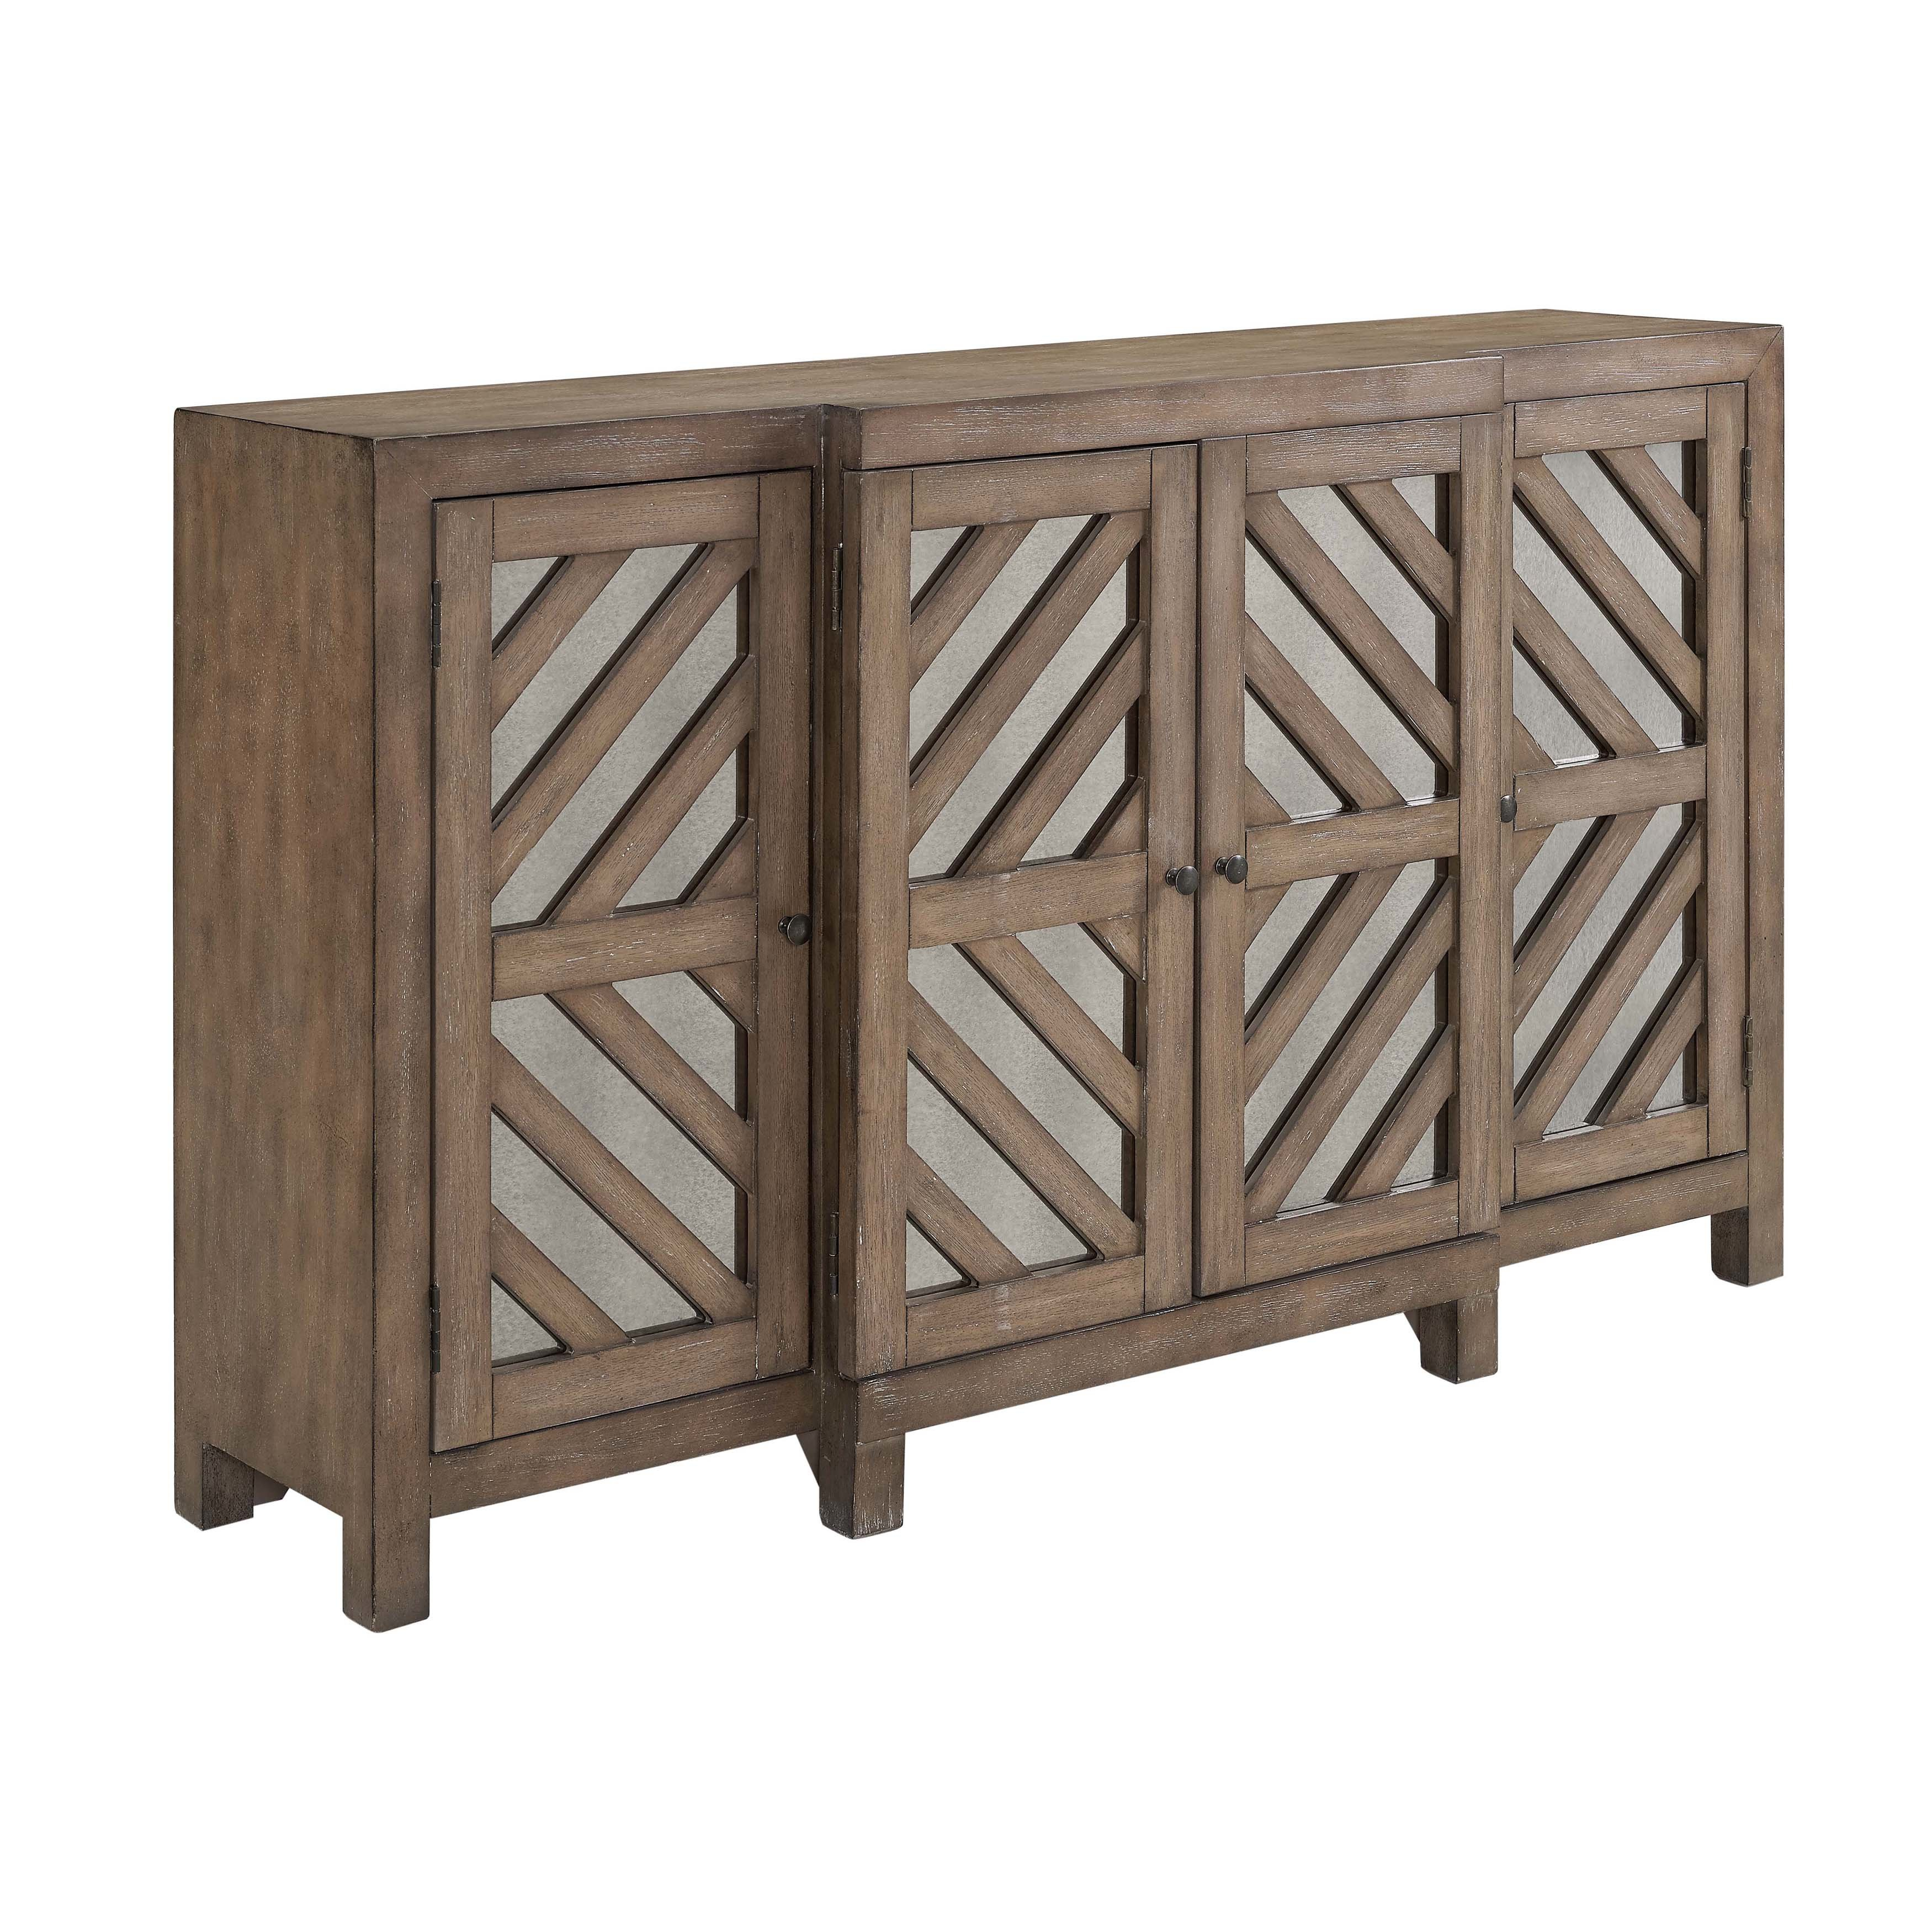 Lowrey Credenza in Stillwater Sideboards (Image 13 of 30)